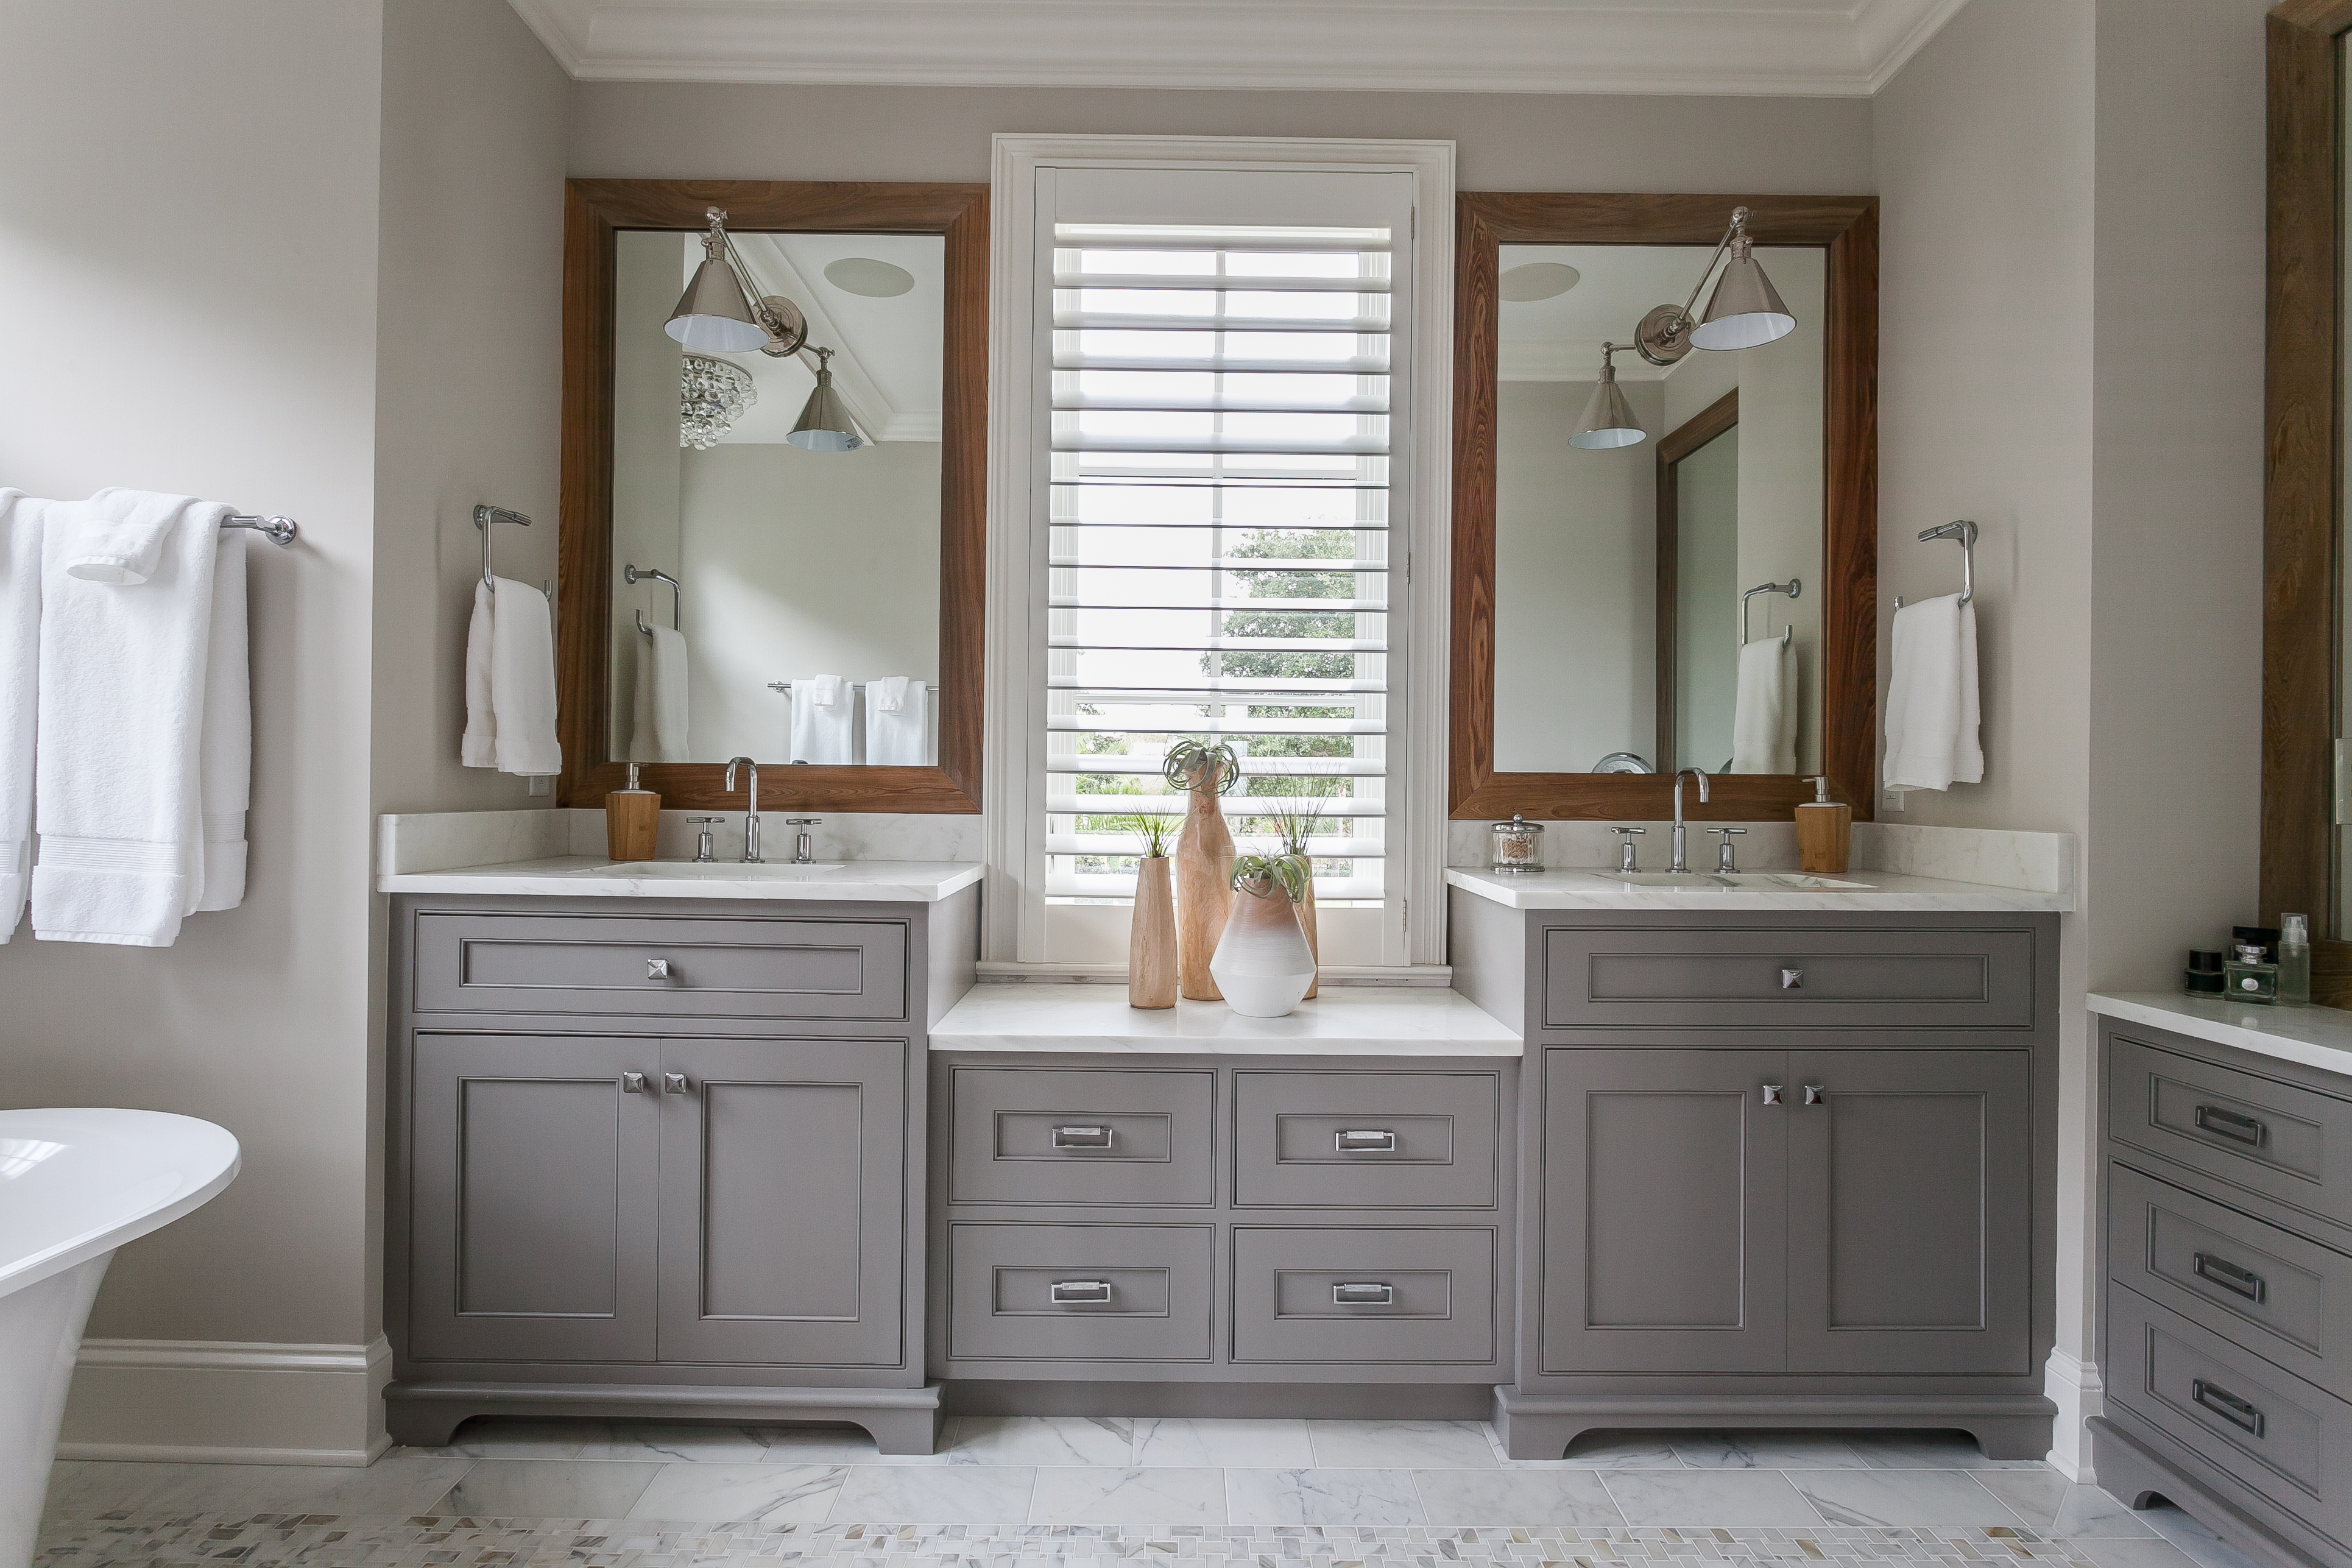 vanities stone wall bathroom and counter william custom project sink cabinets vanity dark jeffrey undermount with